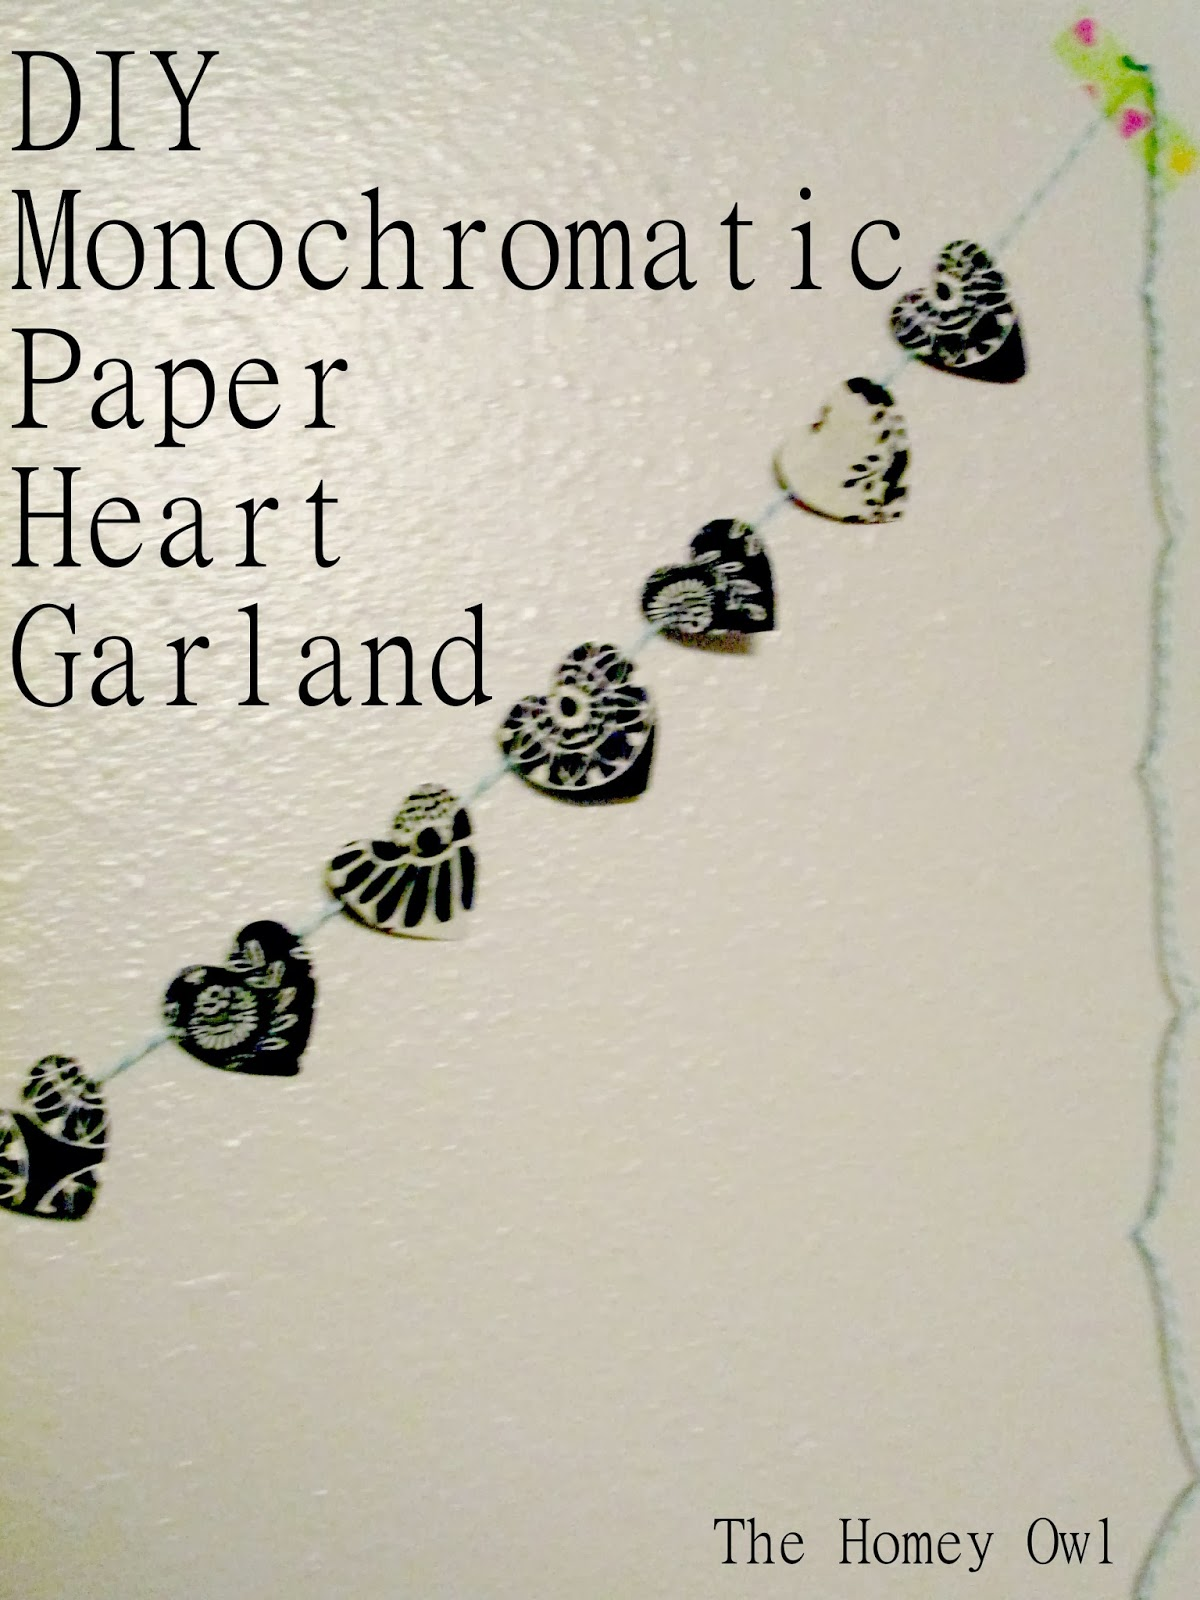 Try This: DIY Monochromatic Paper Heart Garland @ The Homey Owl